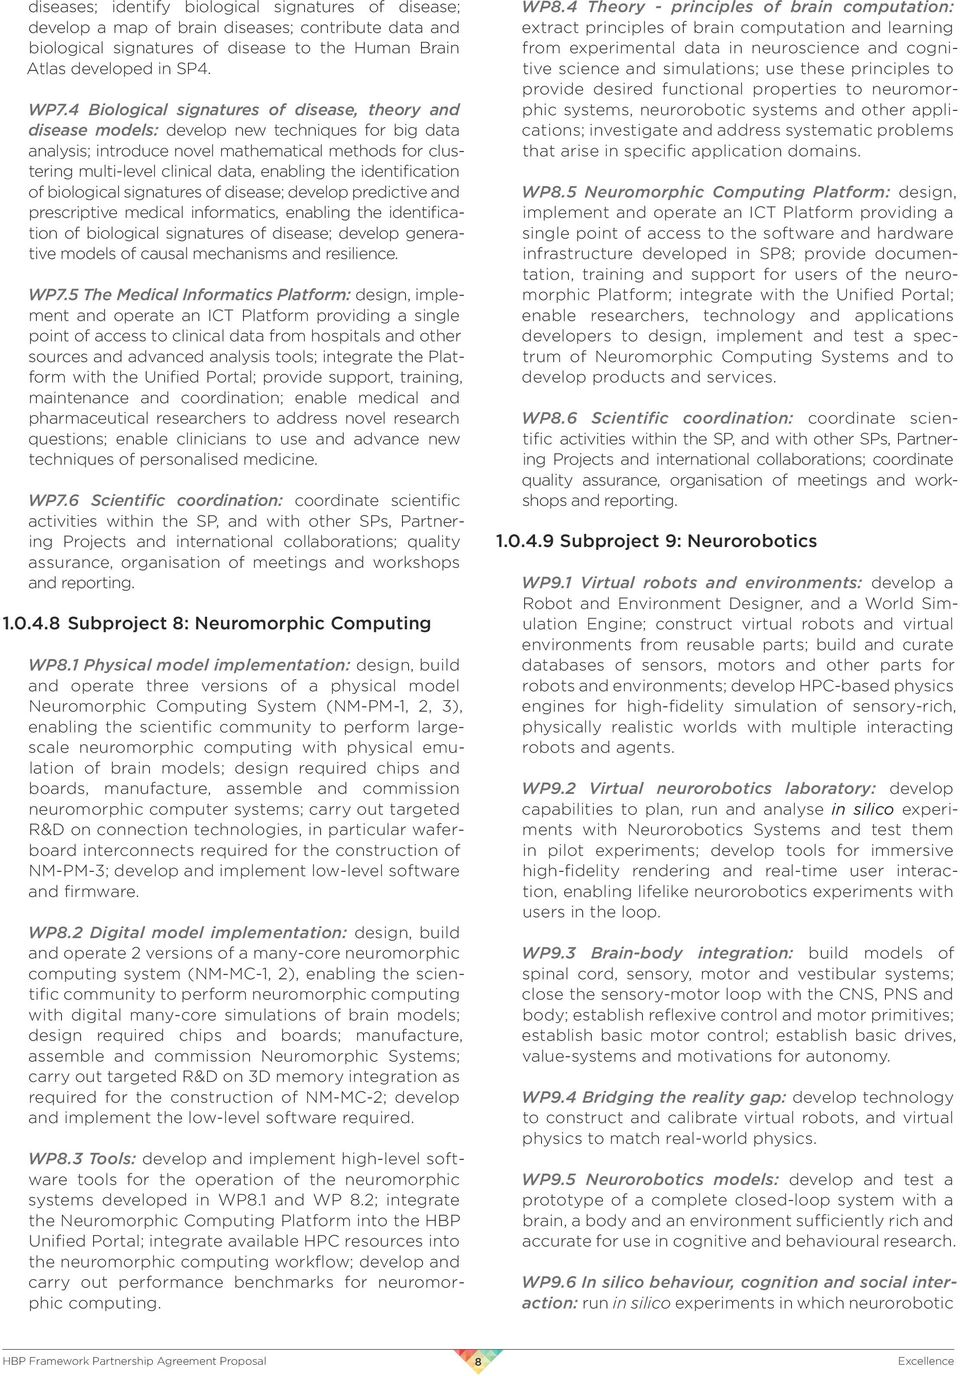 PROPOSAL HUMAN BRAIN PROJECT FRAMEWORK PARTNERSHIP AGREEMENT - PDF